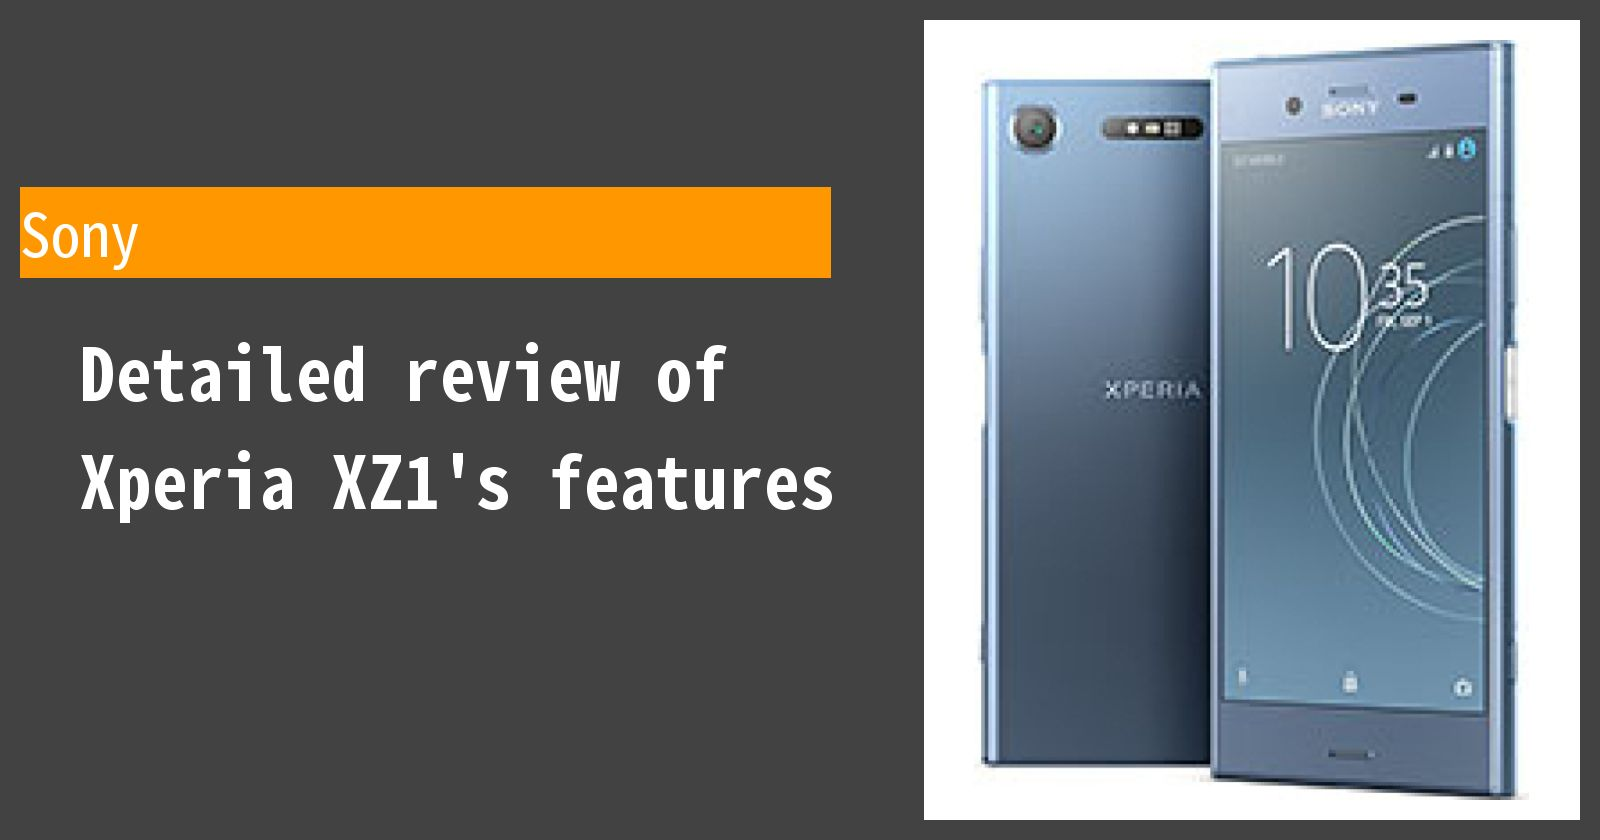 Detailed review of Xperia XZ1's features